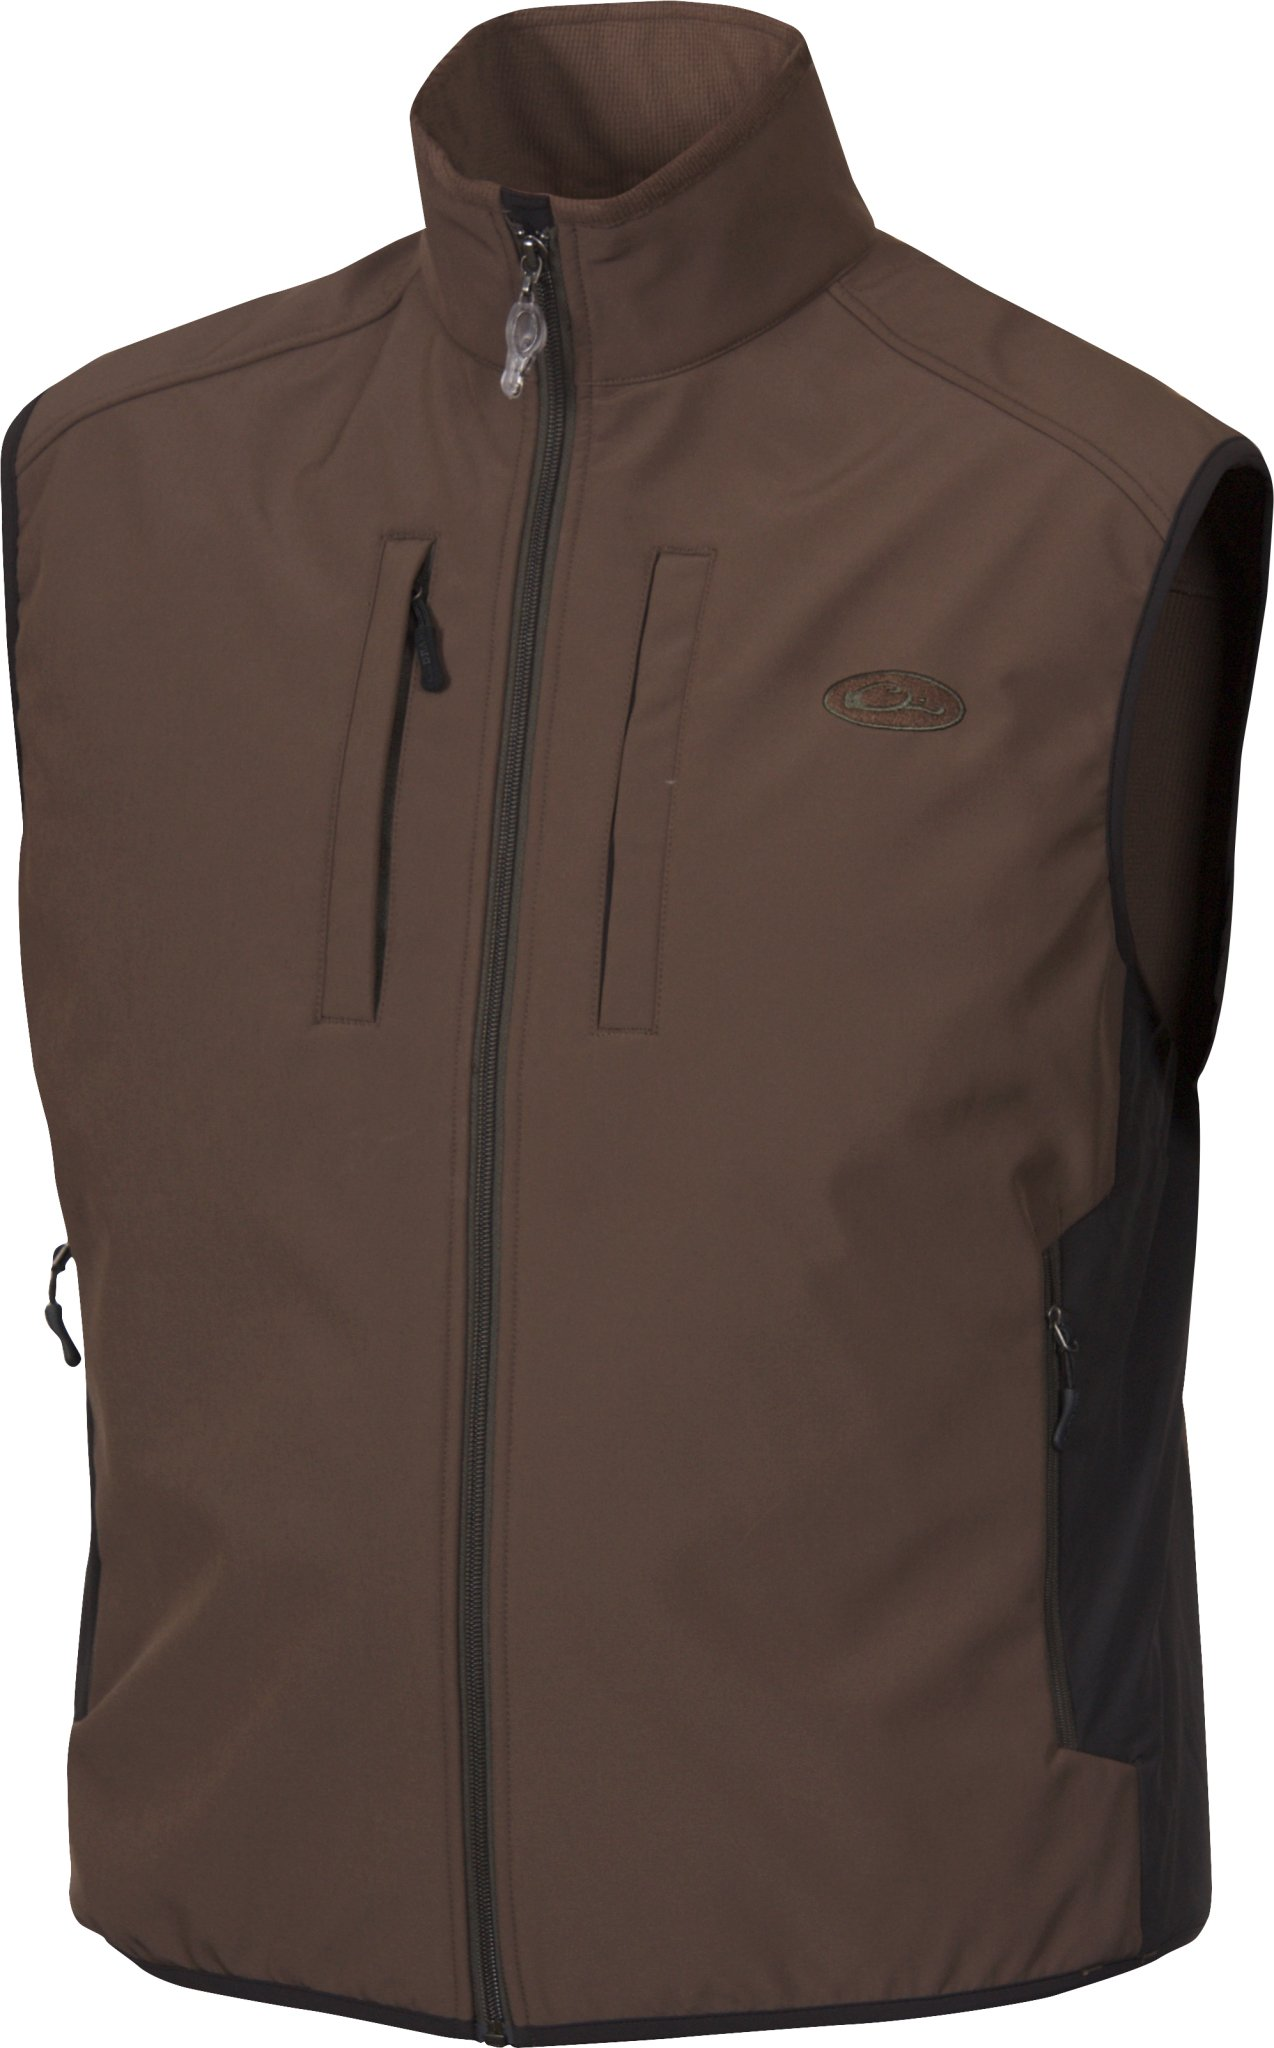 Drake Windproof Tech Brown Vest, Small